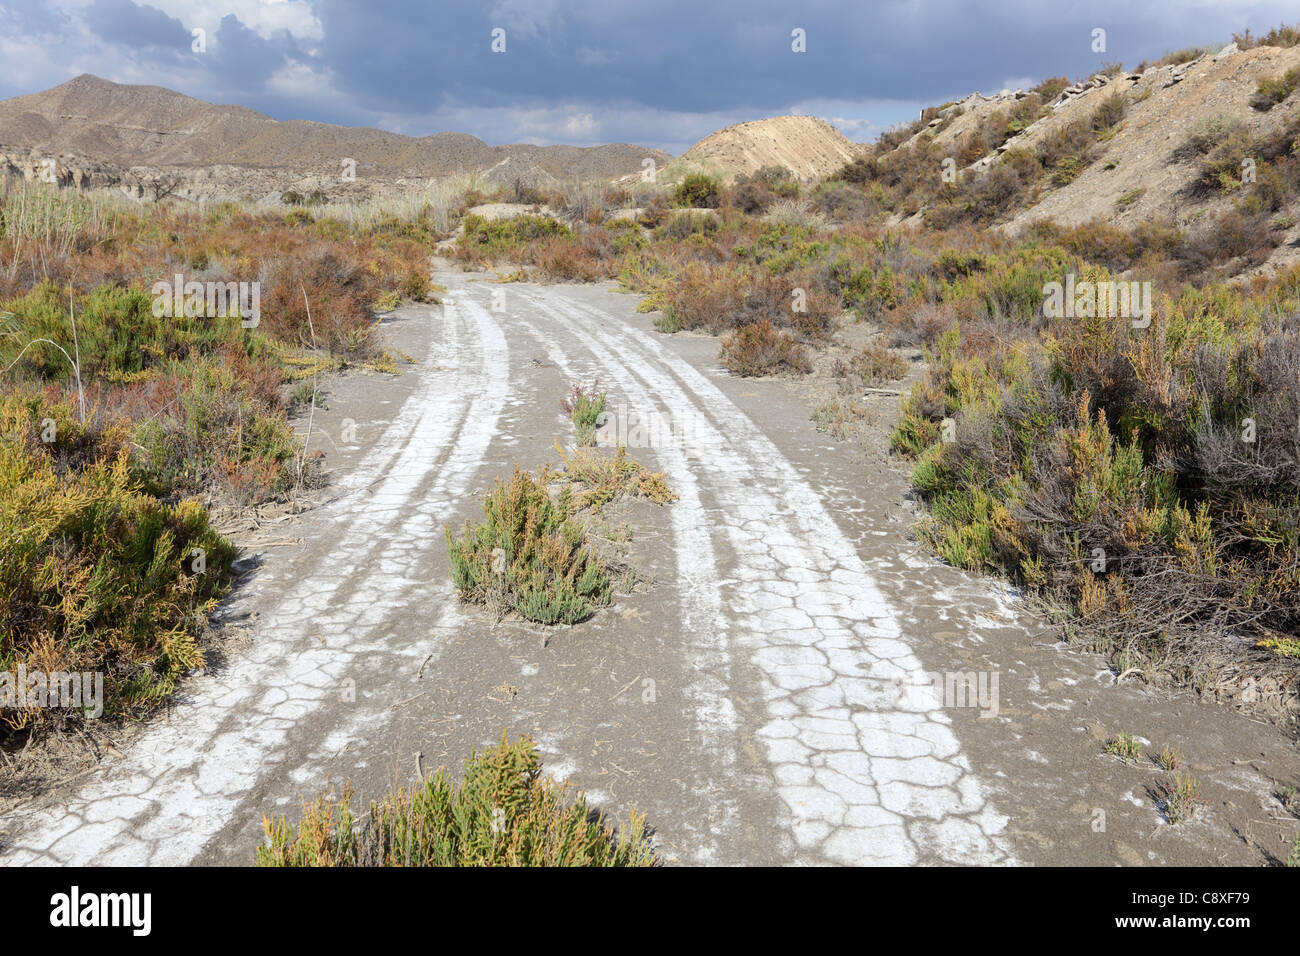 Lonely road in the desert. Andalusia, Spain - Stock Image